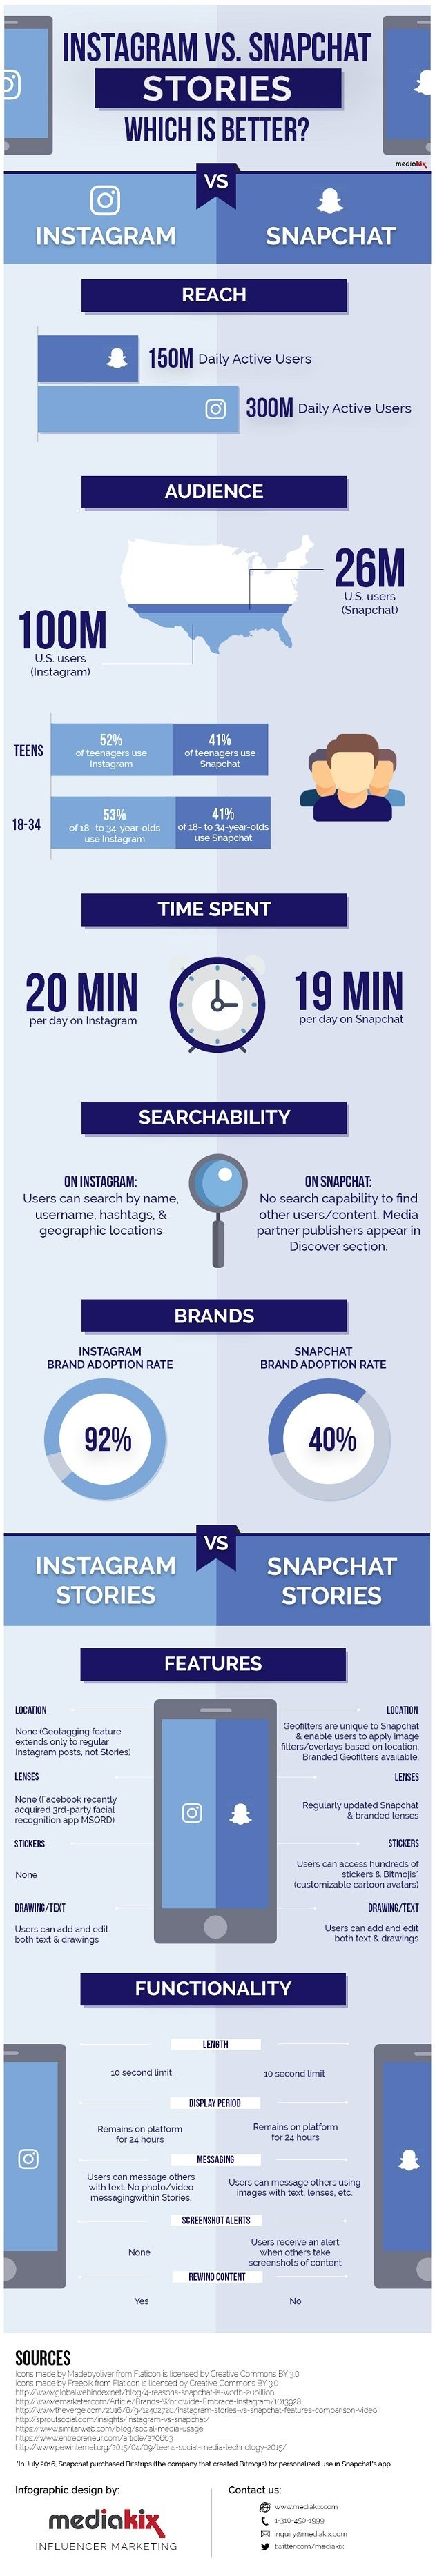 Social Media - Instagram Stories vs. Snapchat: Which Is Better for Your Marketing Needs? [Infographic] : MarketingProfs Article